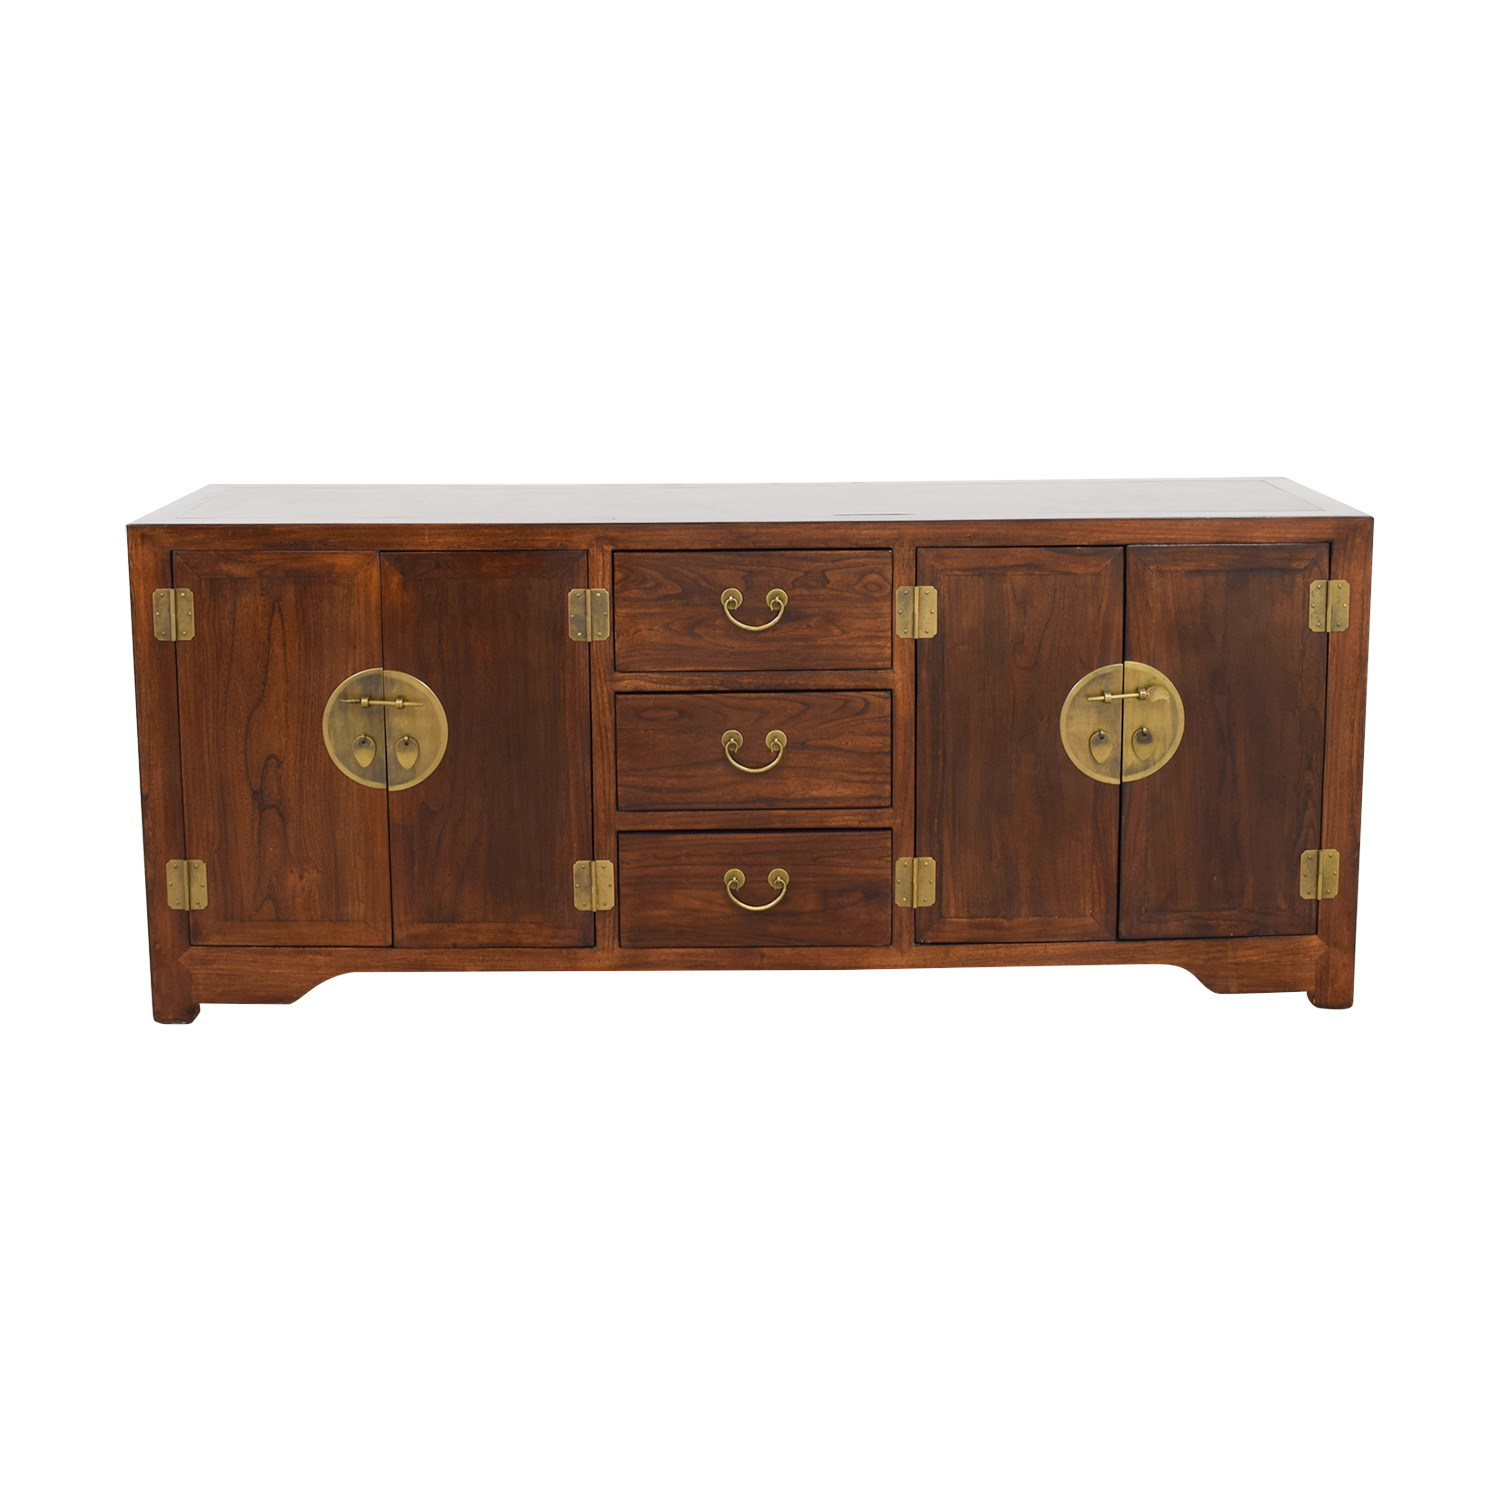 ABC Carpet and Home Asian-Inspired Wood Credenza / Storage